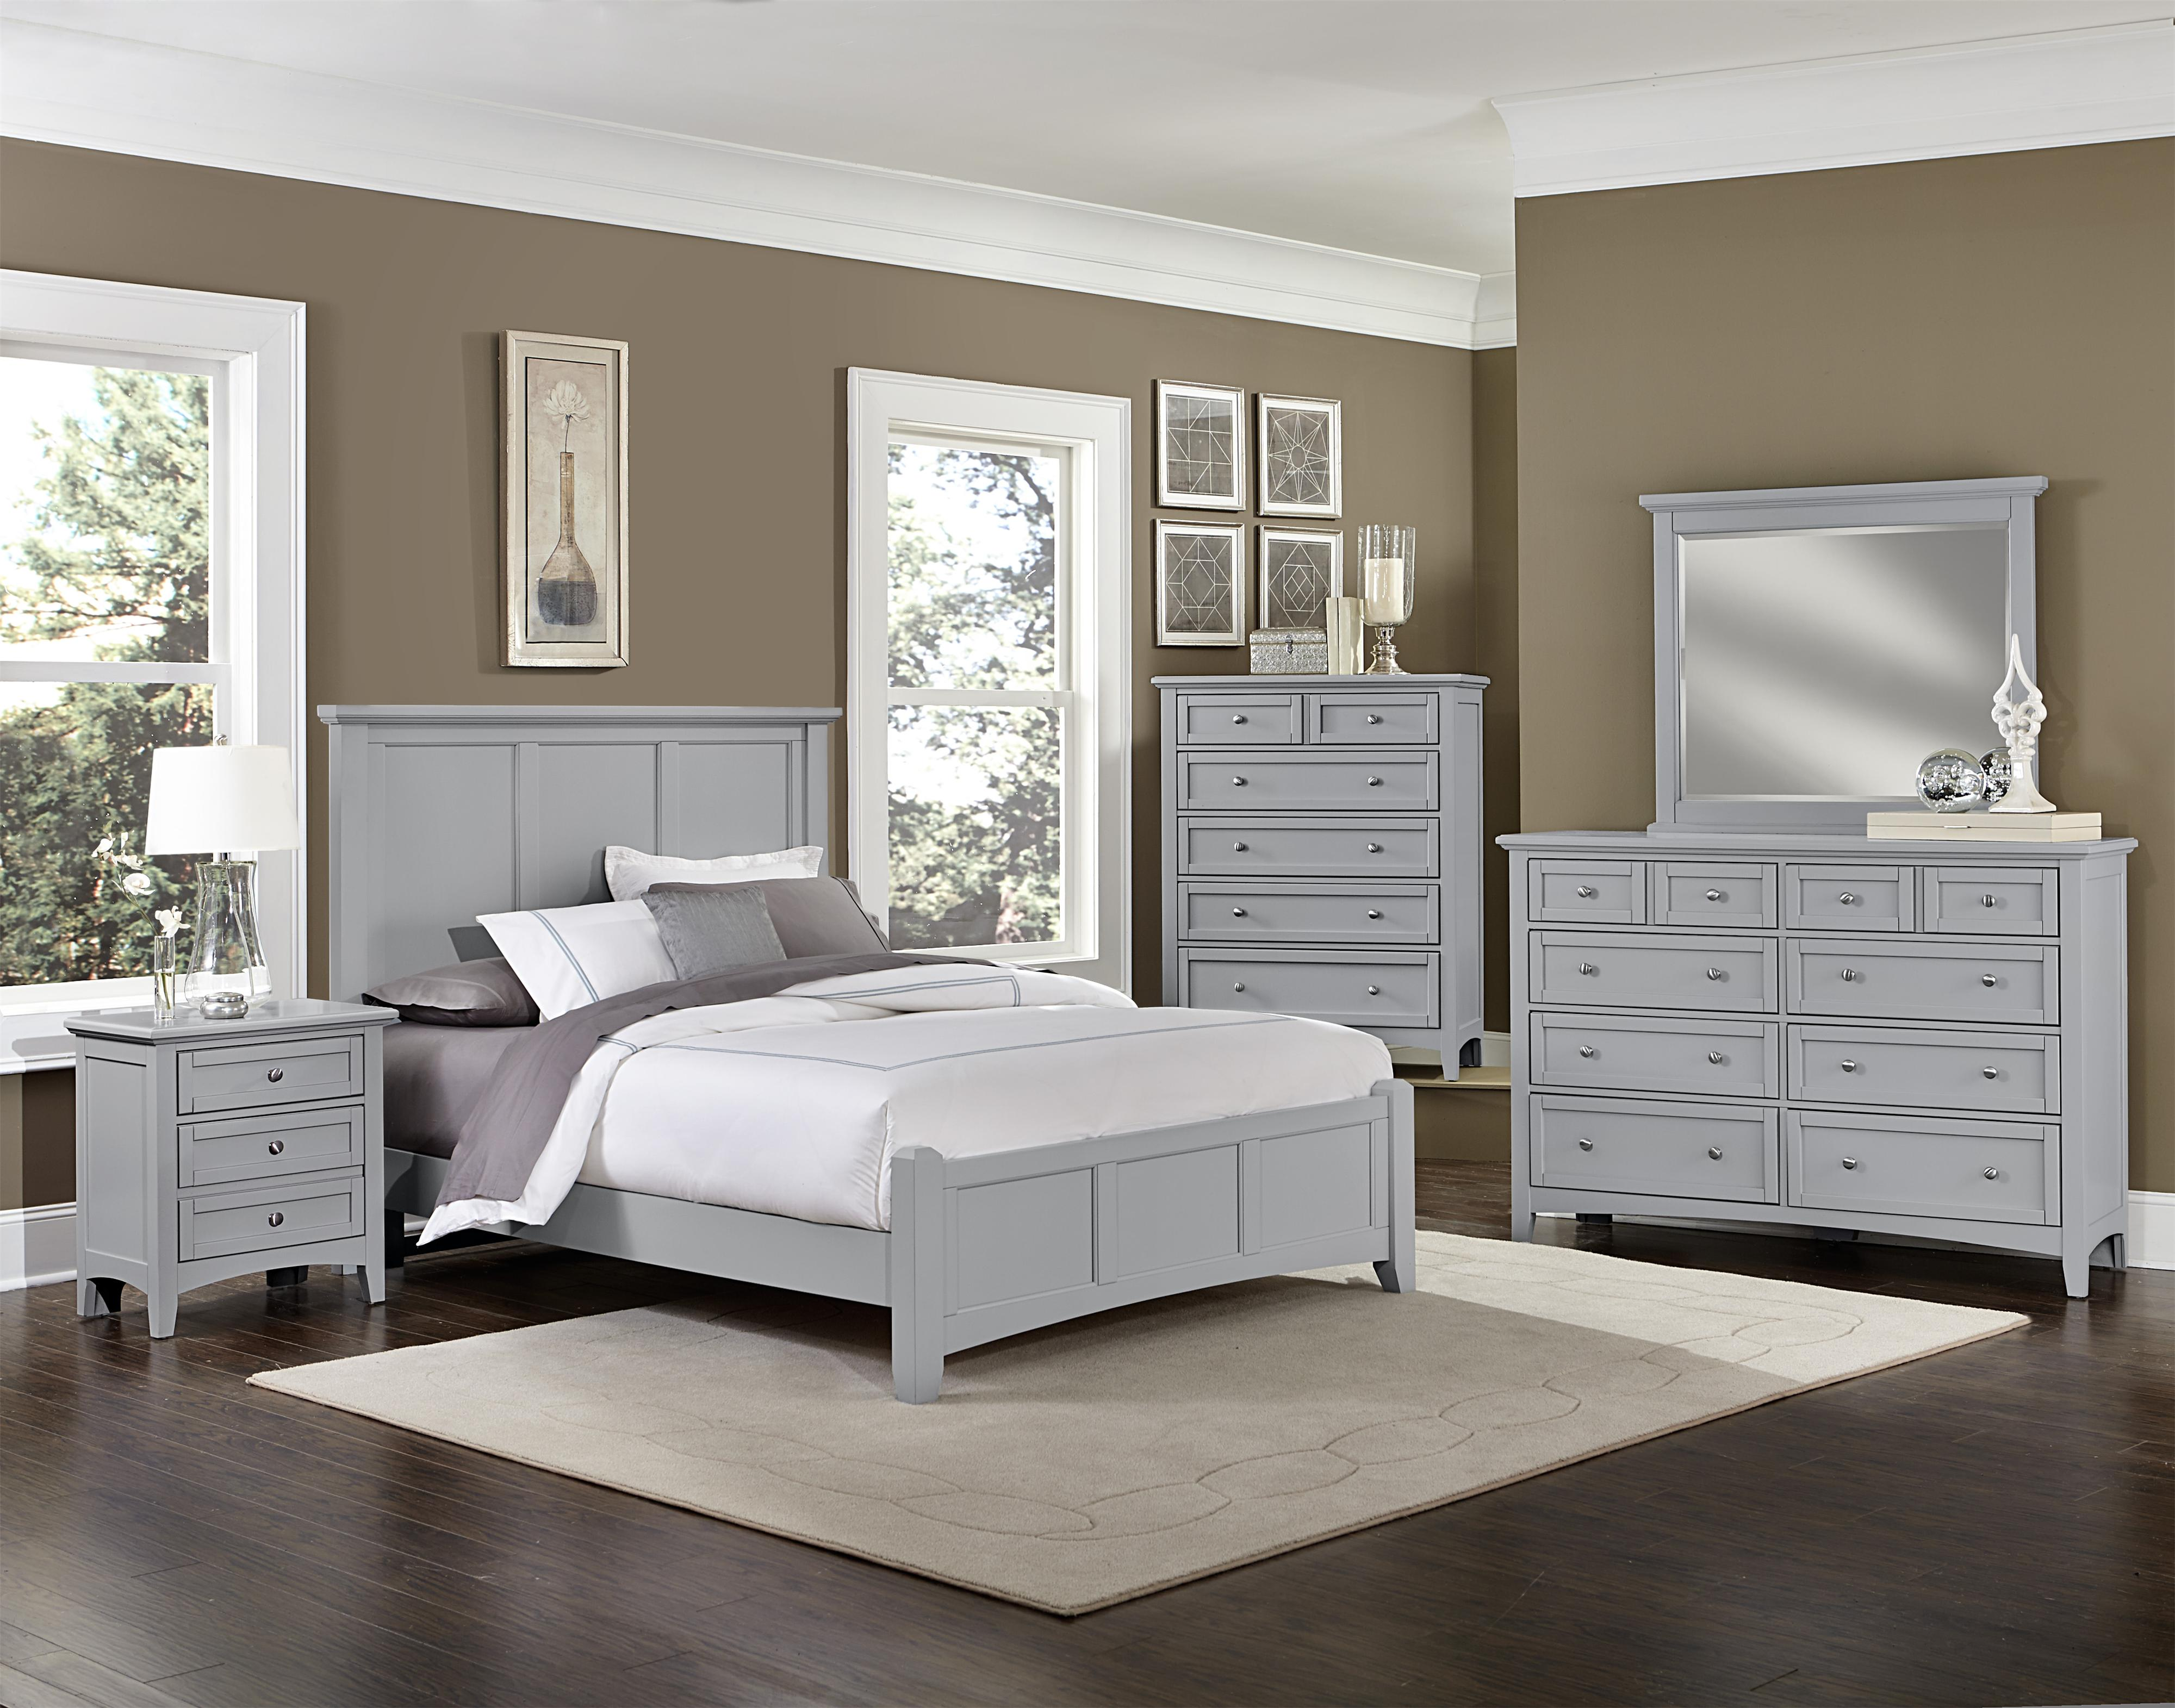 King Mansion Bed,Dresser,Mirror,Nightsta